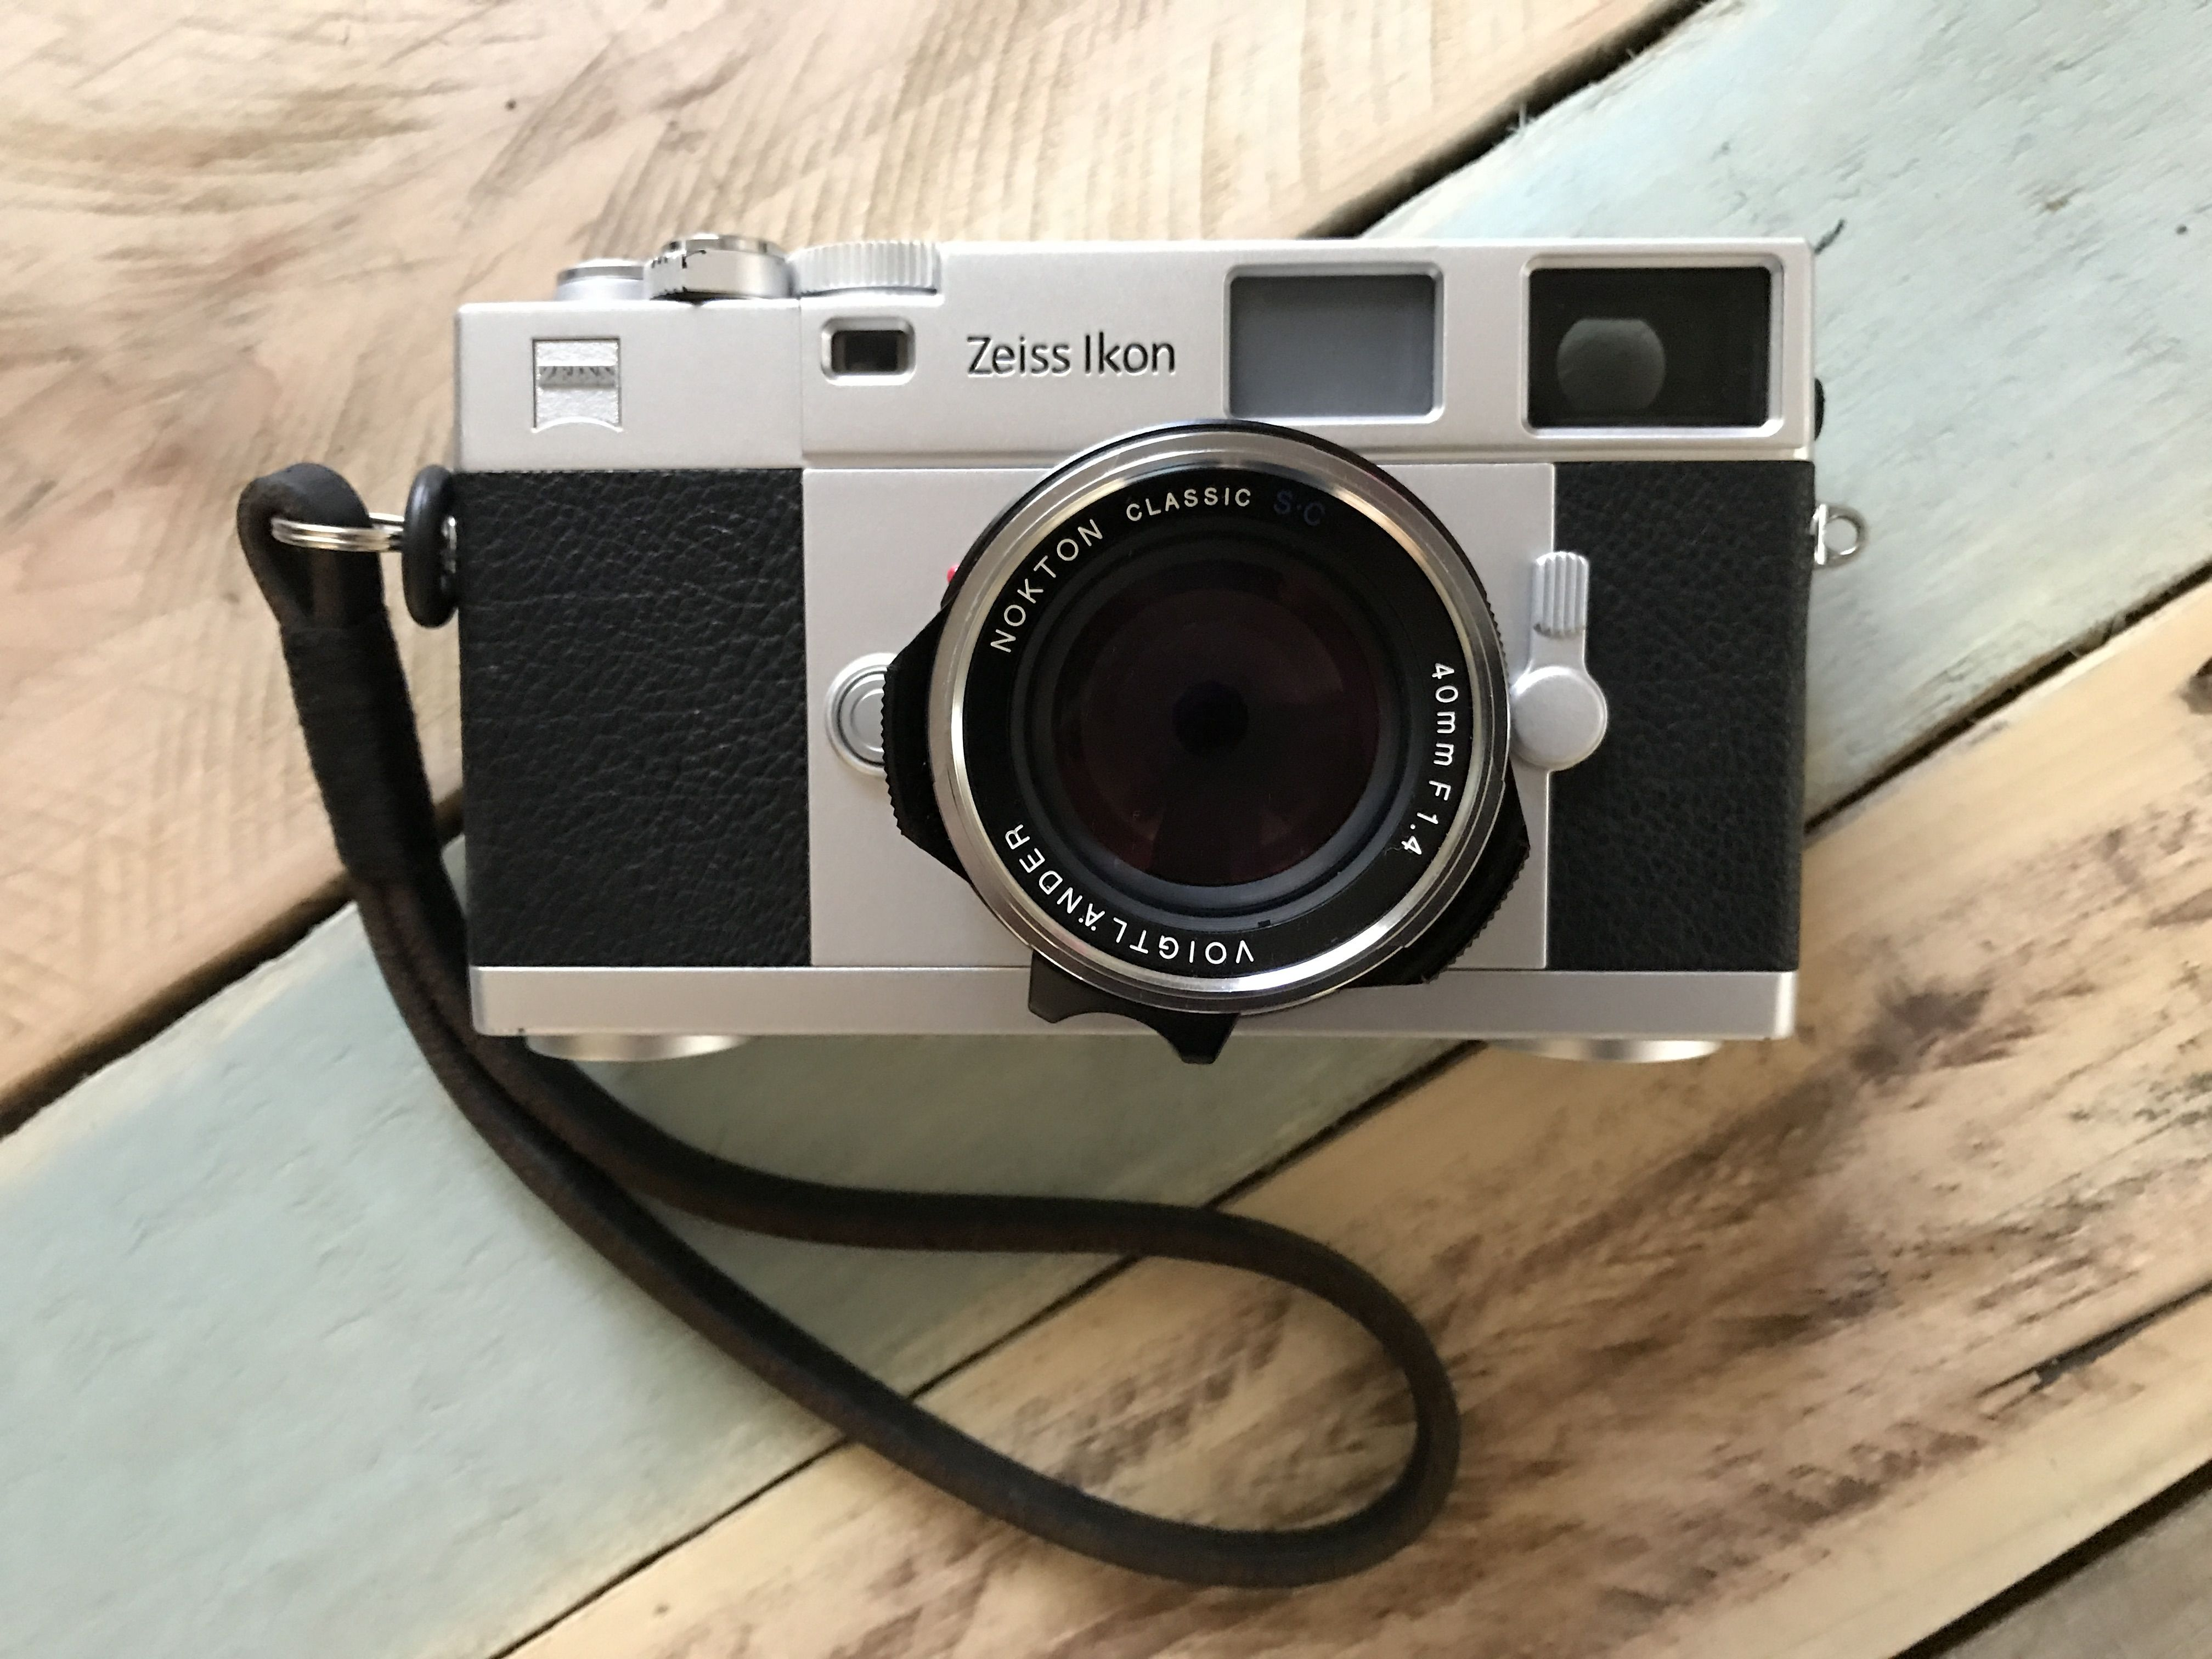 Zeiss Ikon ZM yes, it's true   it is much better than a #Leica #M6